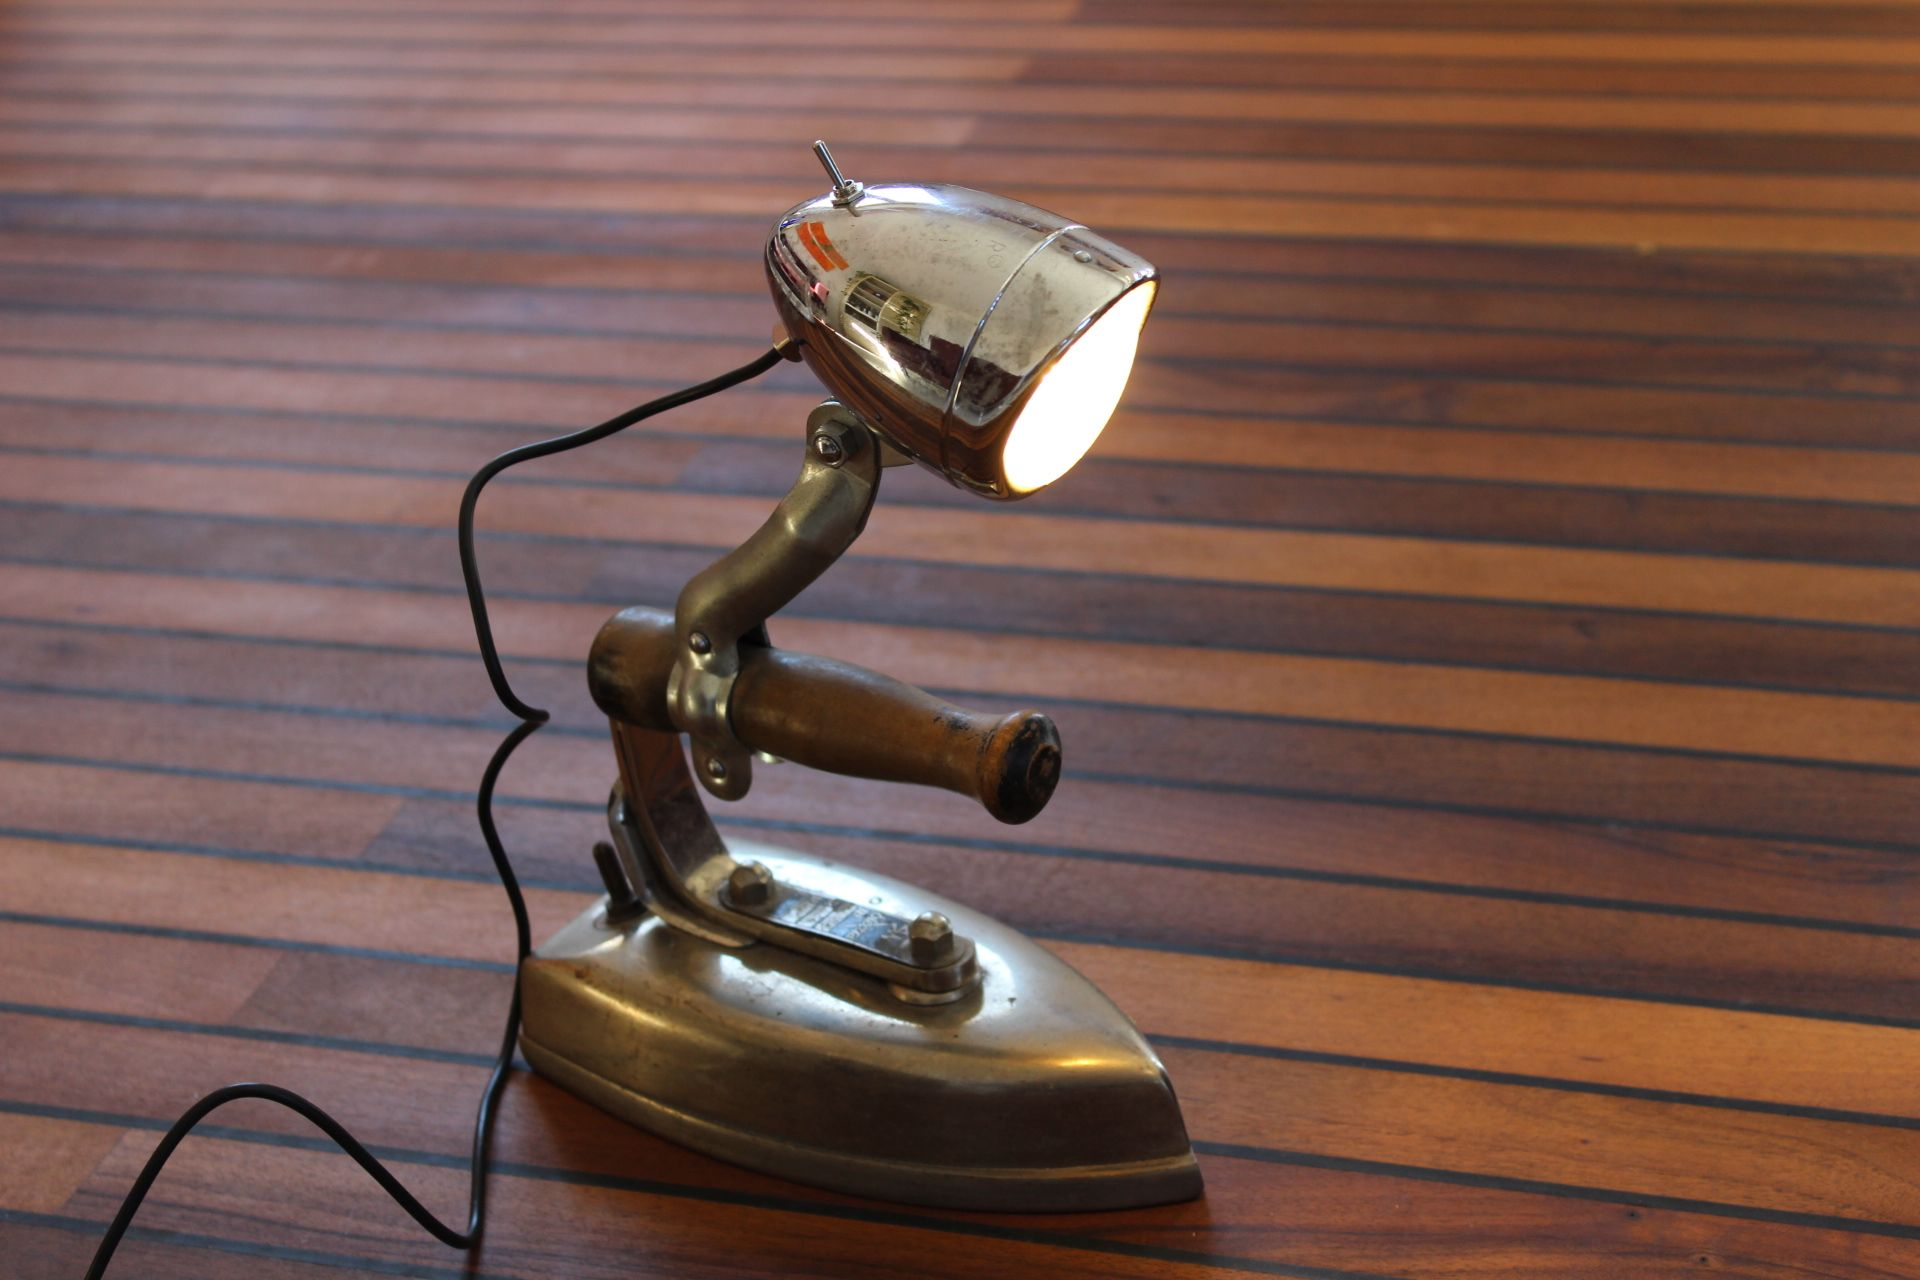 Recycling Lampe aus B\u00fcgeleisen und Fahrradteilen recycelt. Upcycling lamp with reused bike parts ...